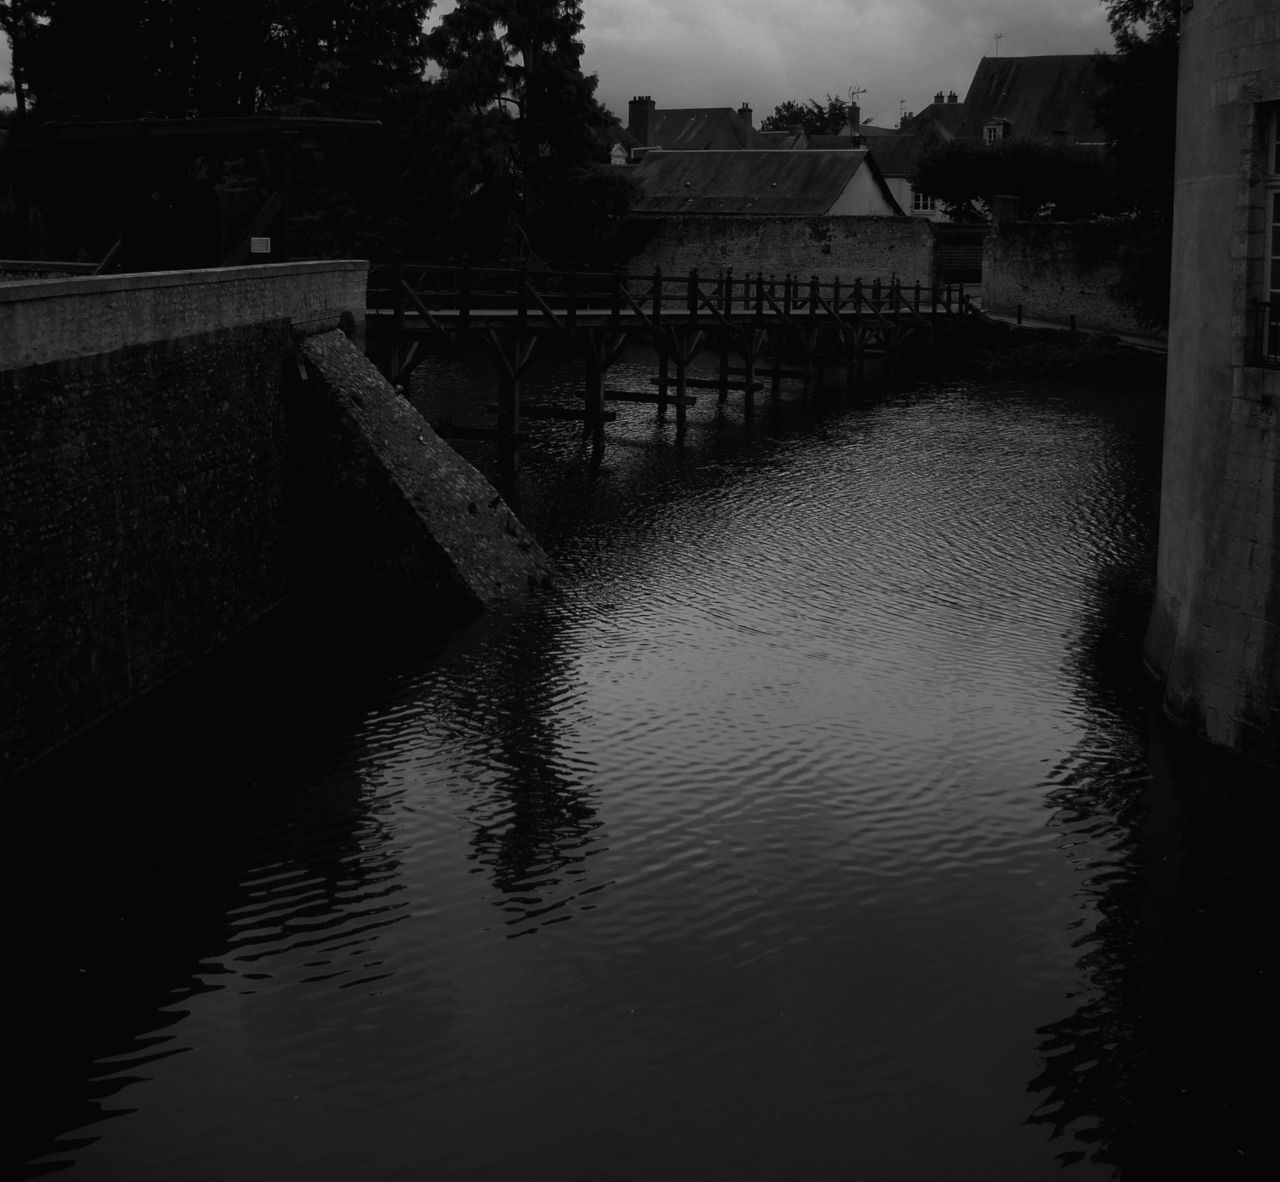 Sully-sur-Loire,2011 own